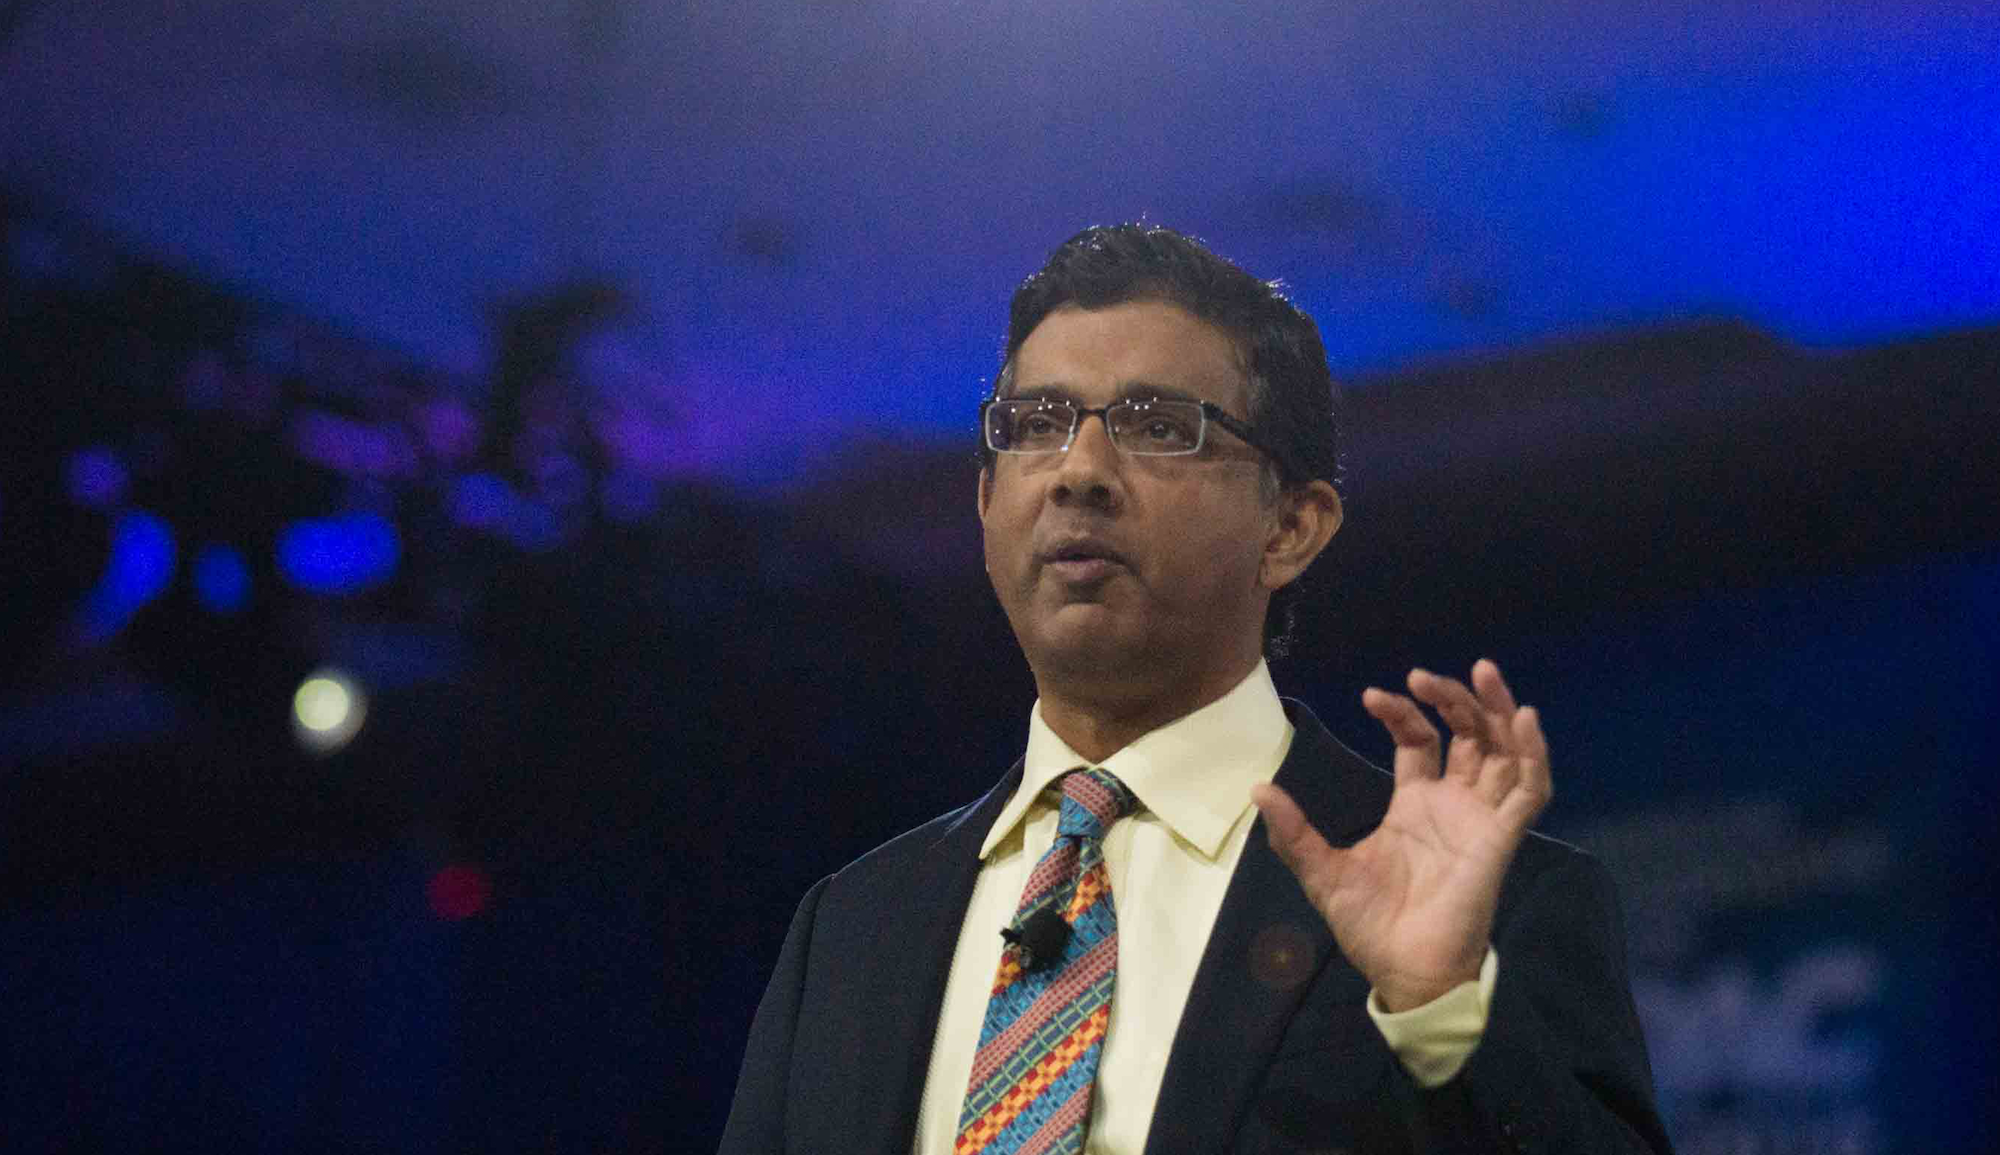 The Deafening Message of Trump's Dinesh D'Souza Pardon